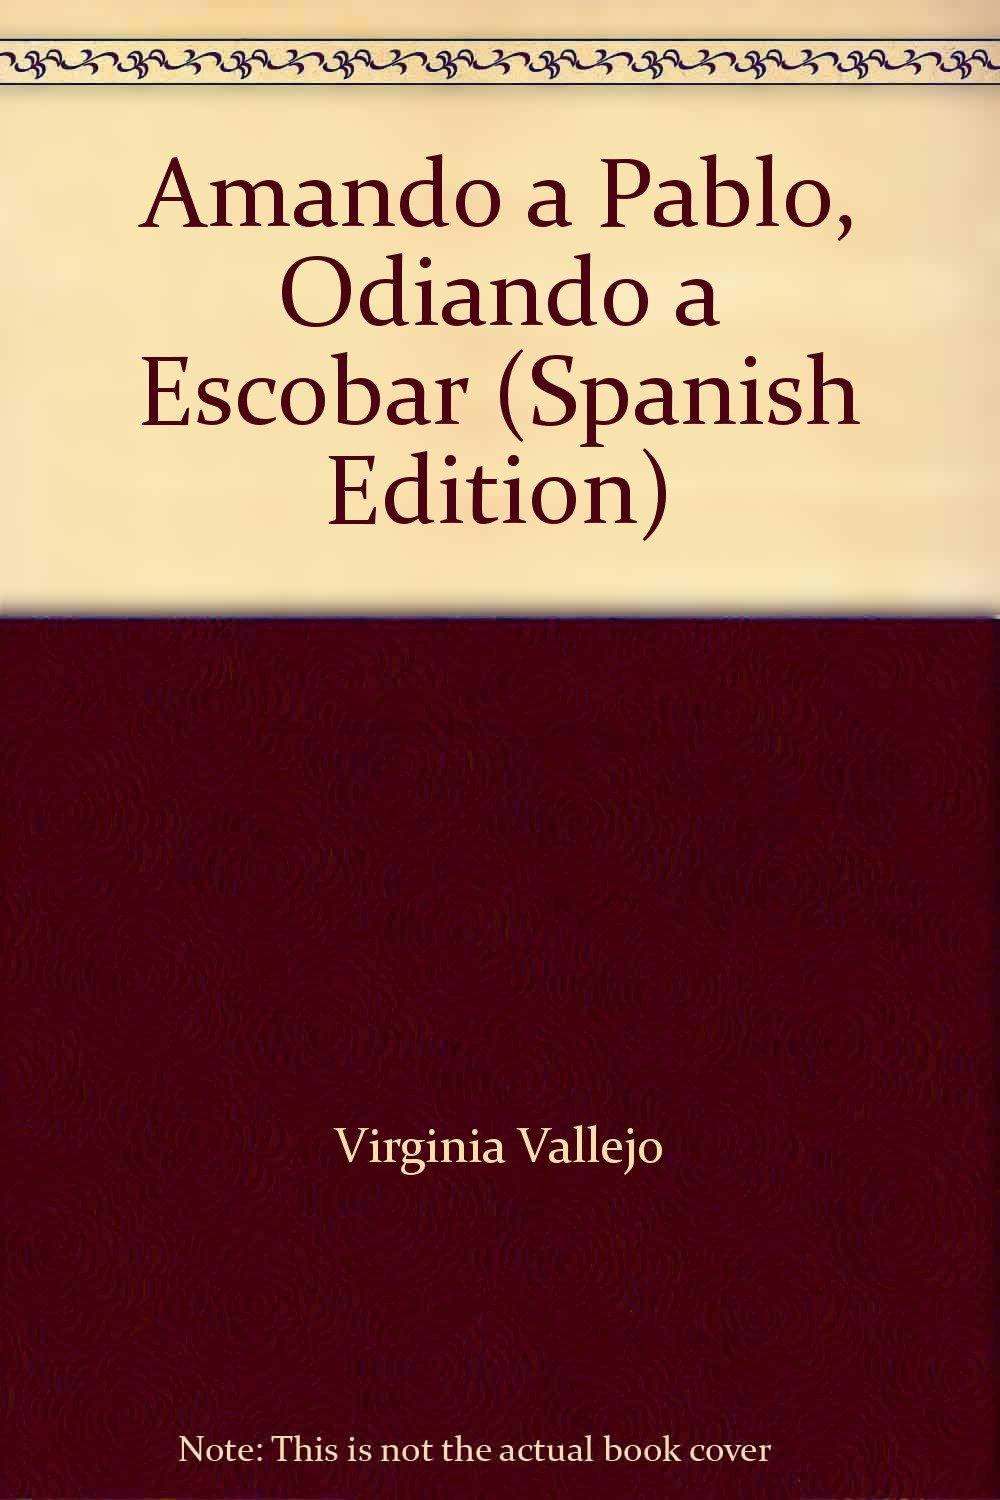 Amando a Pablo, Odiando a Escobar (Spanish Edition): Virginia Vallejo García: 9789586395113: Amazon.com: Books